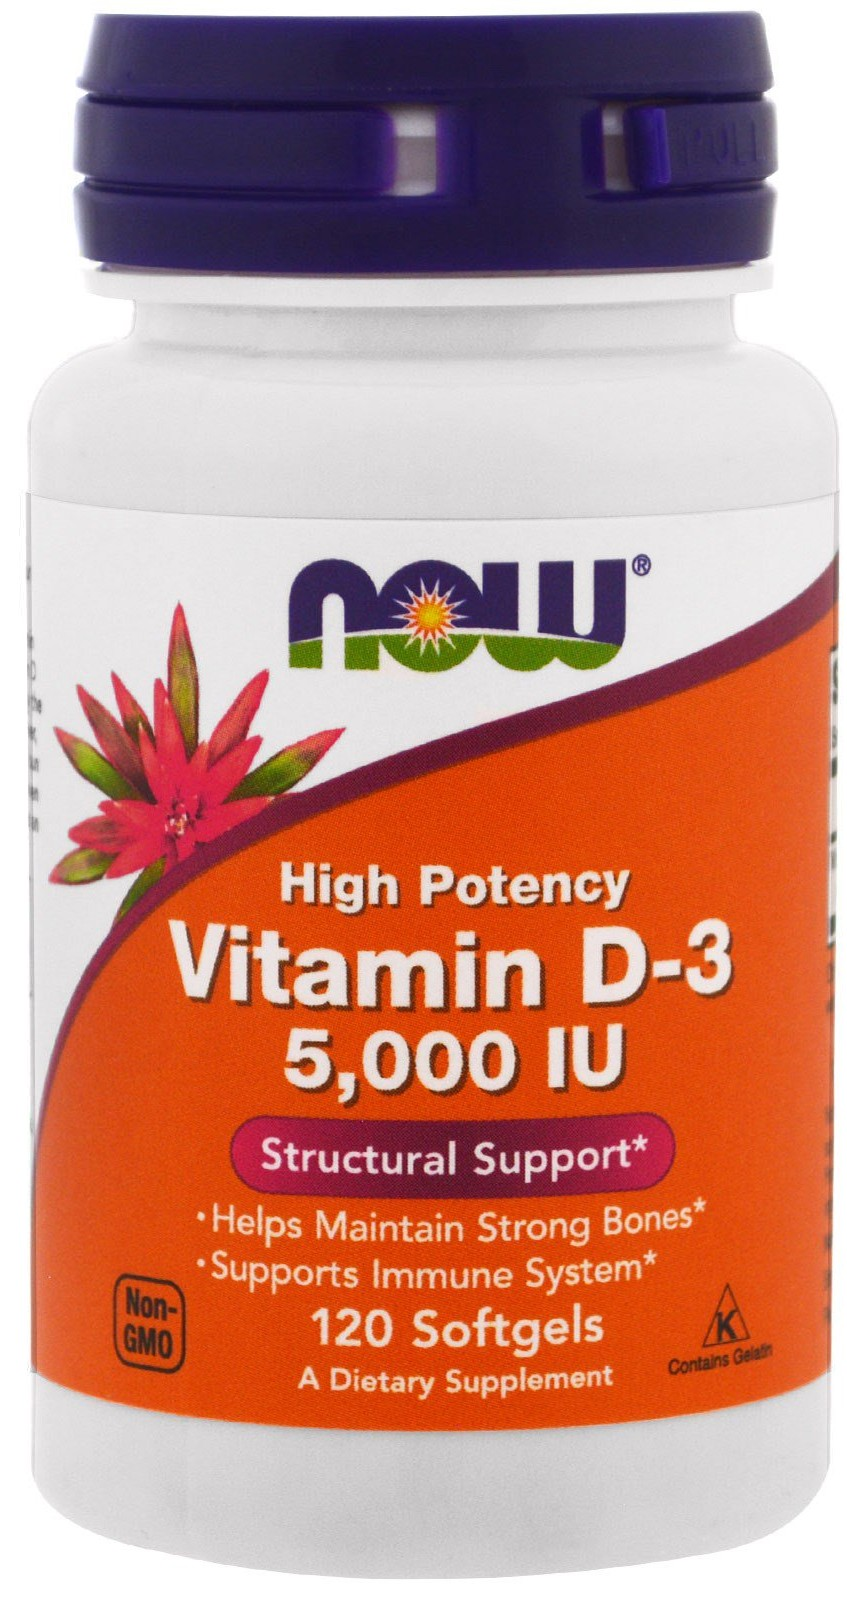 Vitamin D-3 5000 IU NOW (120 softgels)